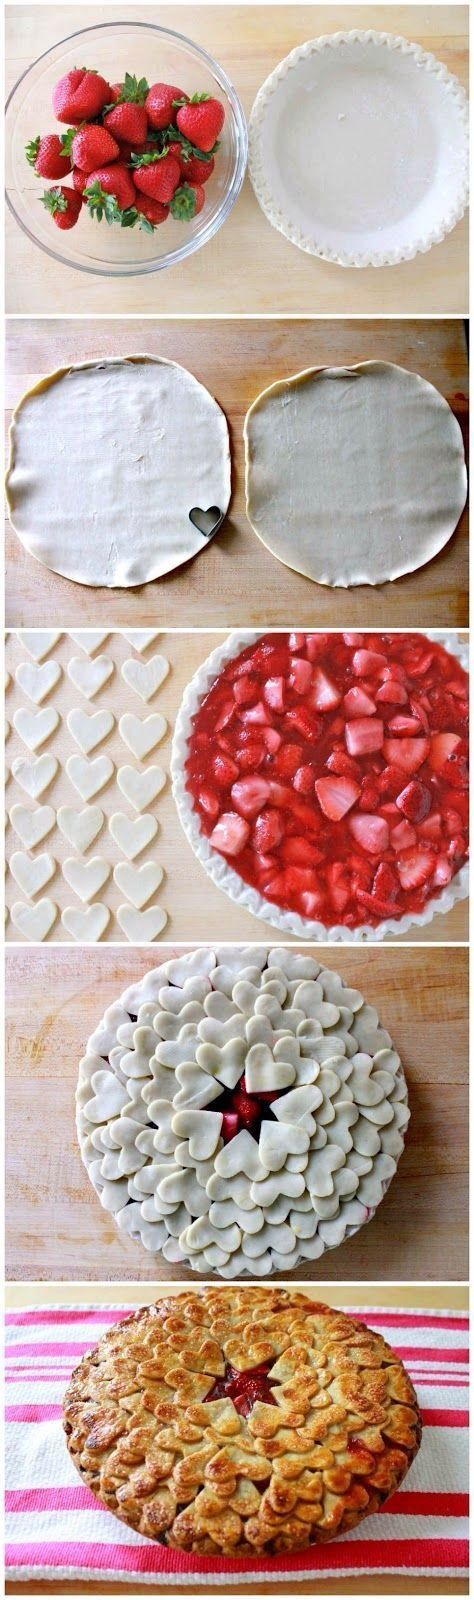 heart strawberry pie- perfect warm #Valentines idea yum yum!